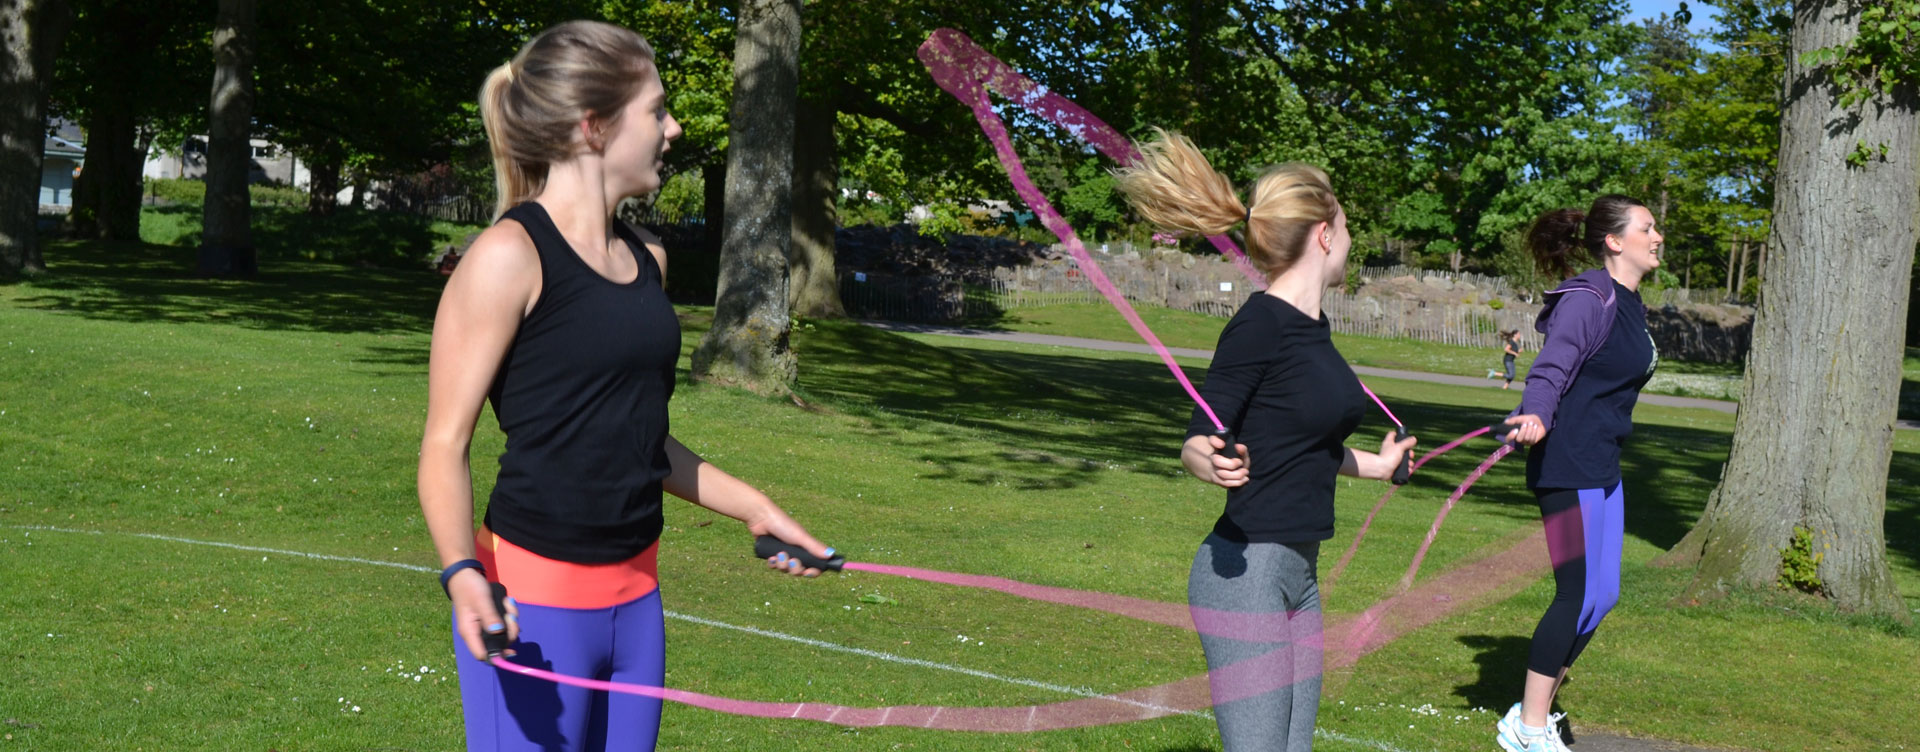 Our hour-long bootcamp sessions in local parks are designed to be fun, social and challenging! Working individually, with partners and in teams in a combination of circuits, interval training, strength and resistance exercises and games; you'll know each session is taking you one step closer to your fitness goals.